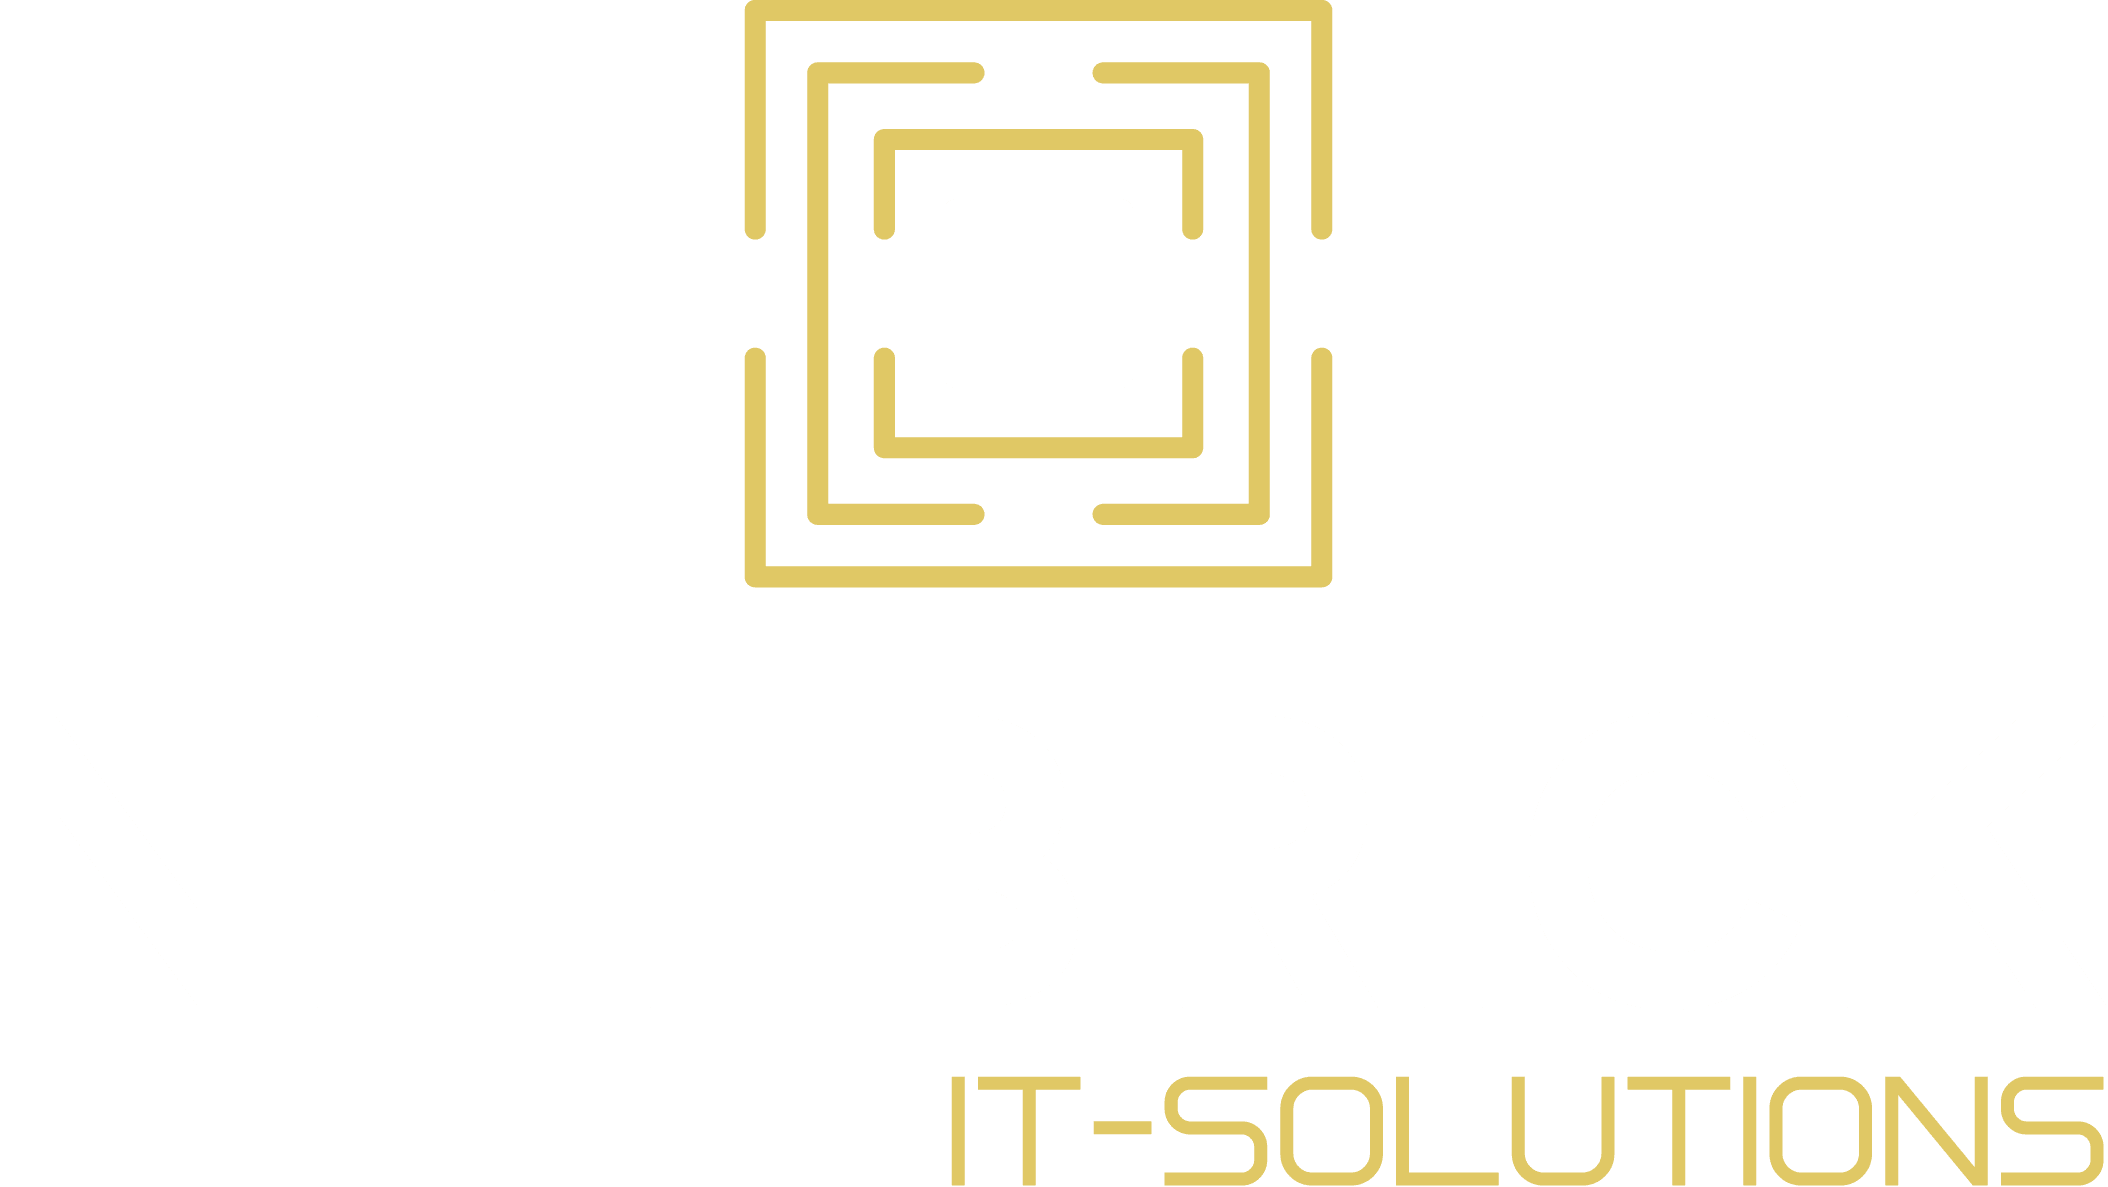 NetBrick - IT Solutions